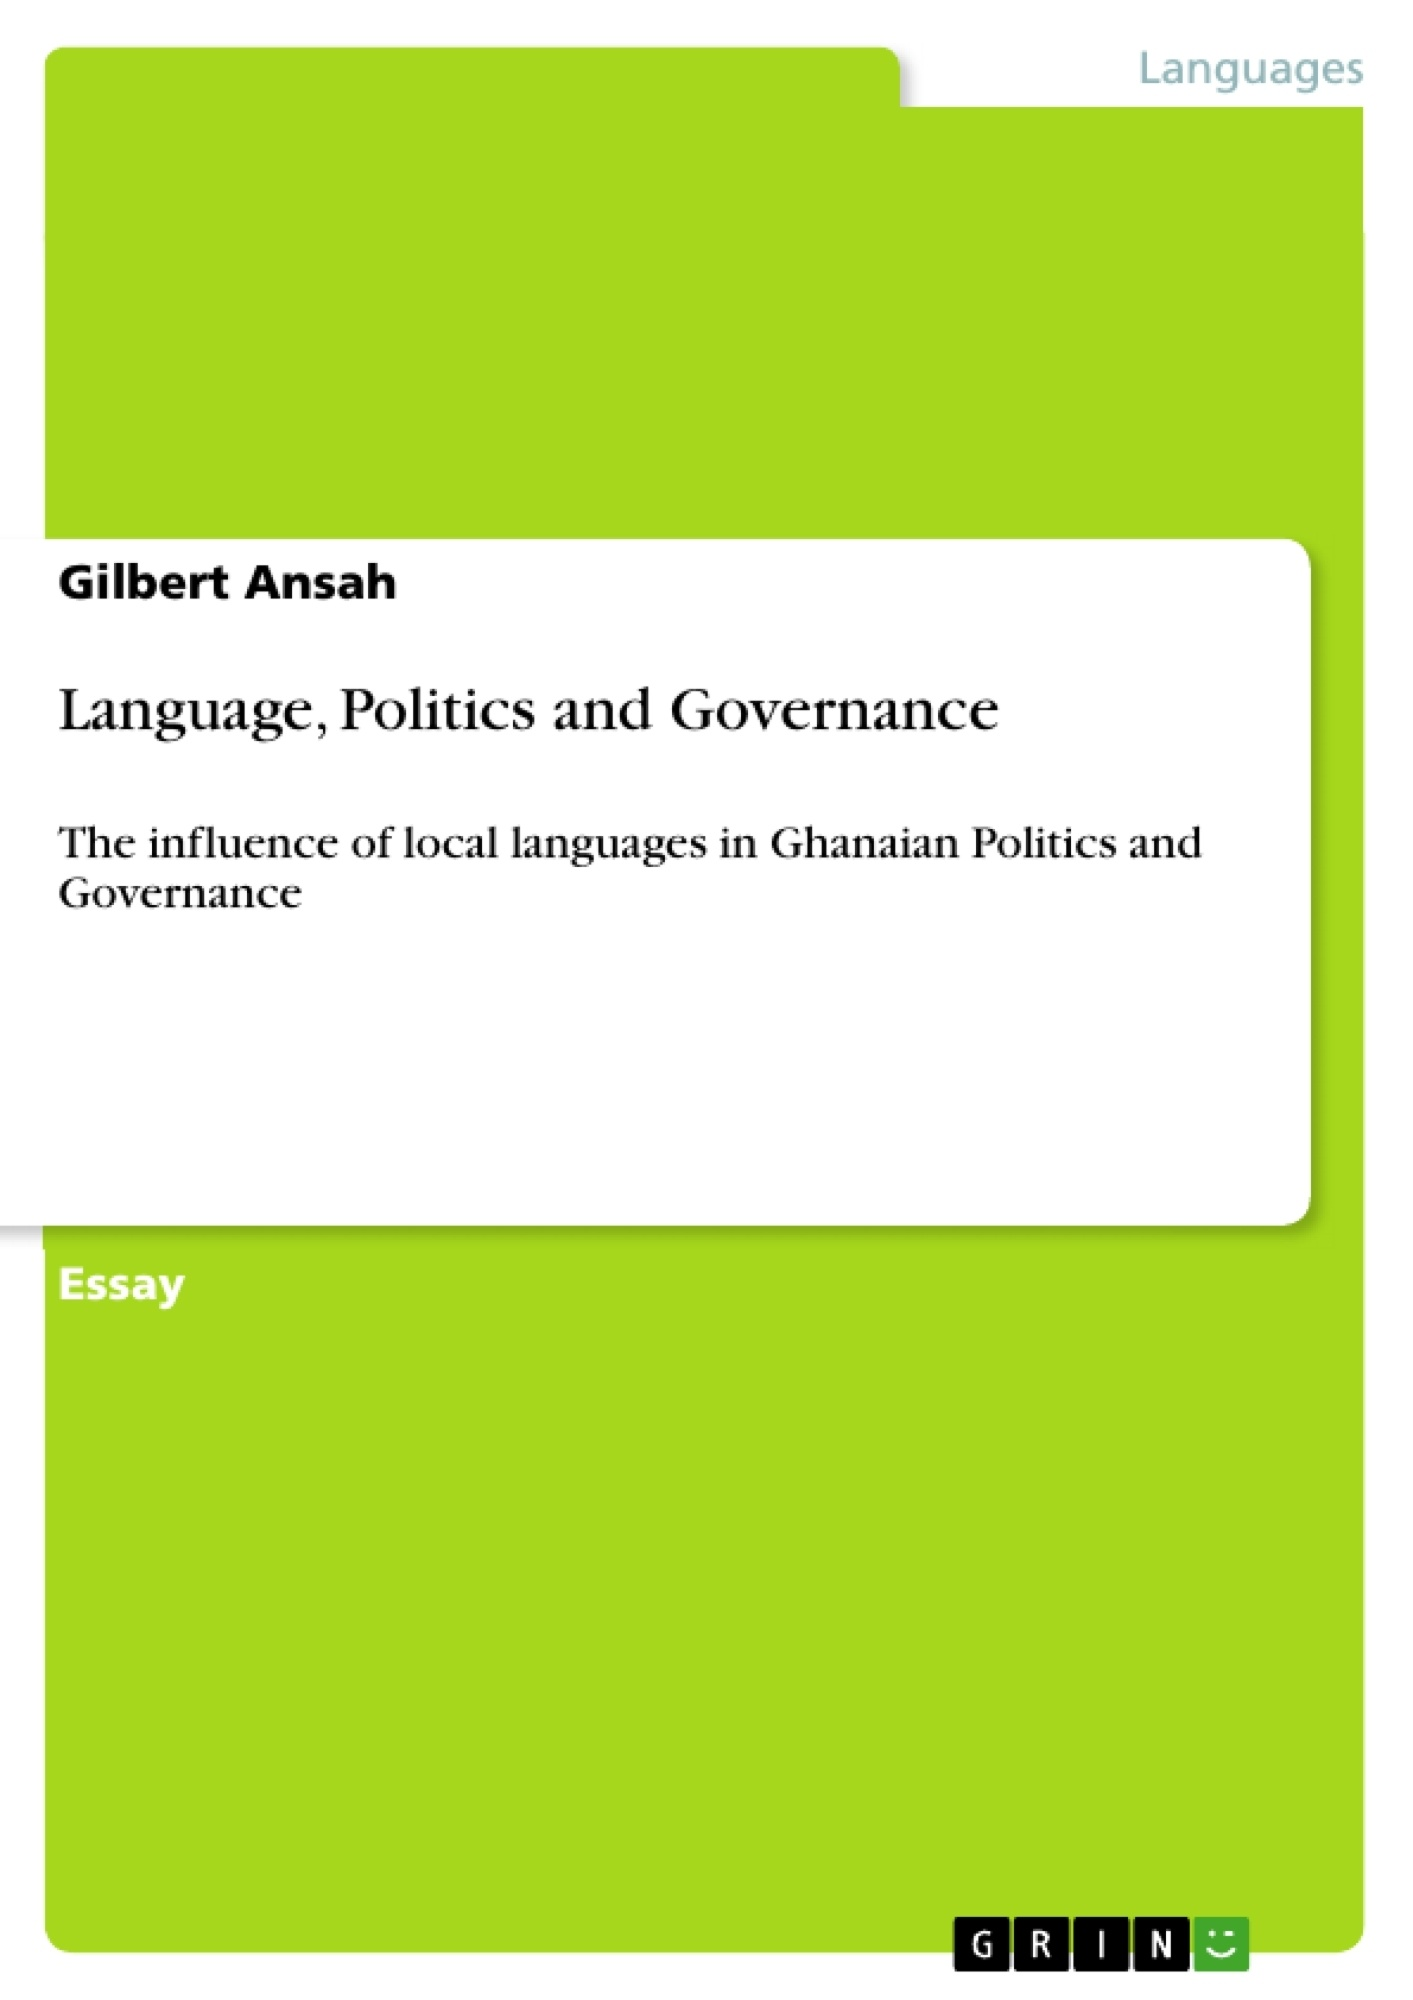 Title: Language, Politics and Governance